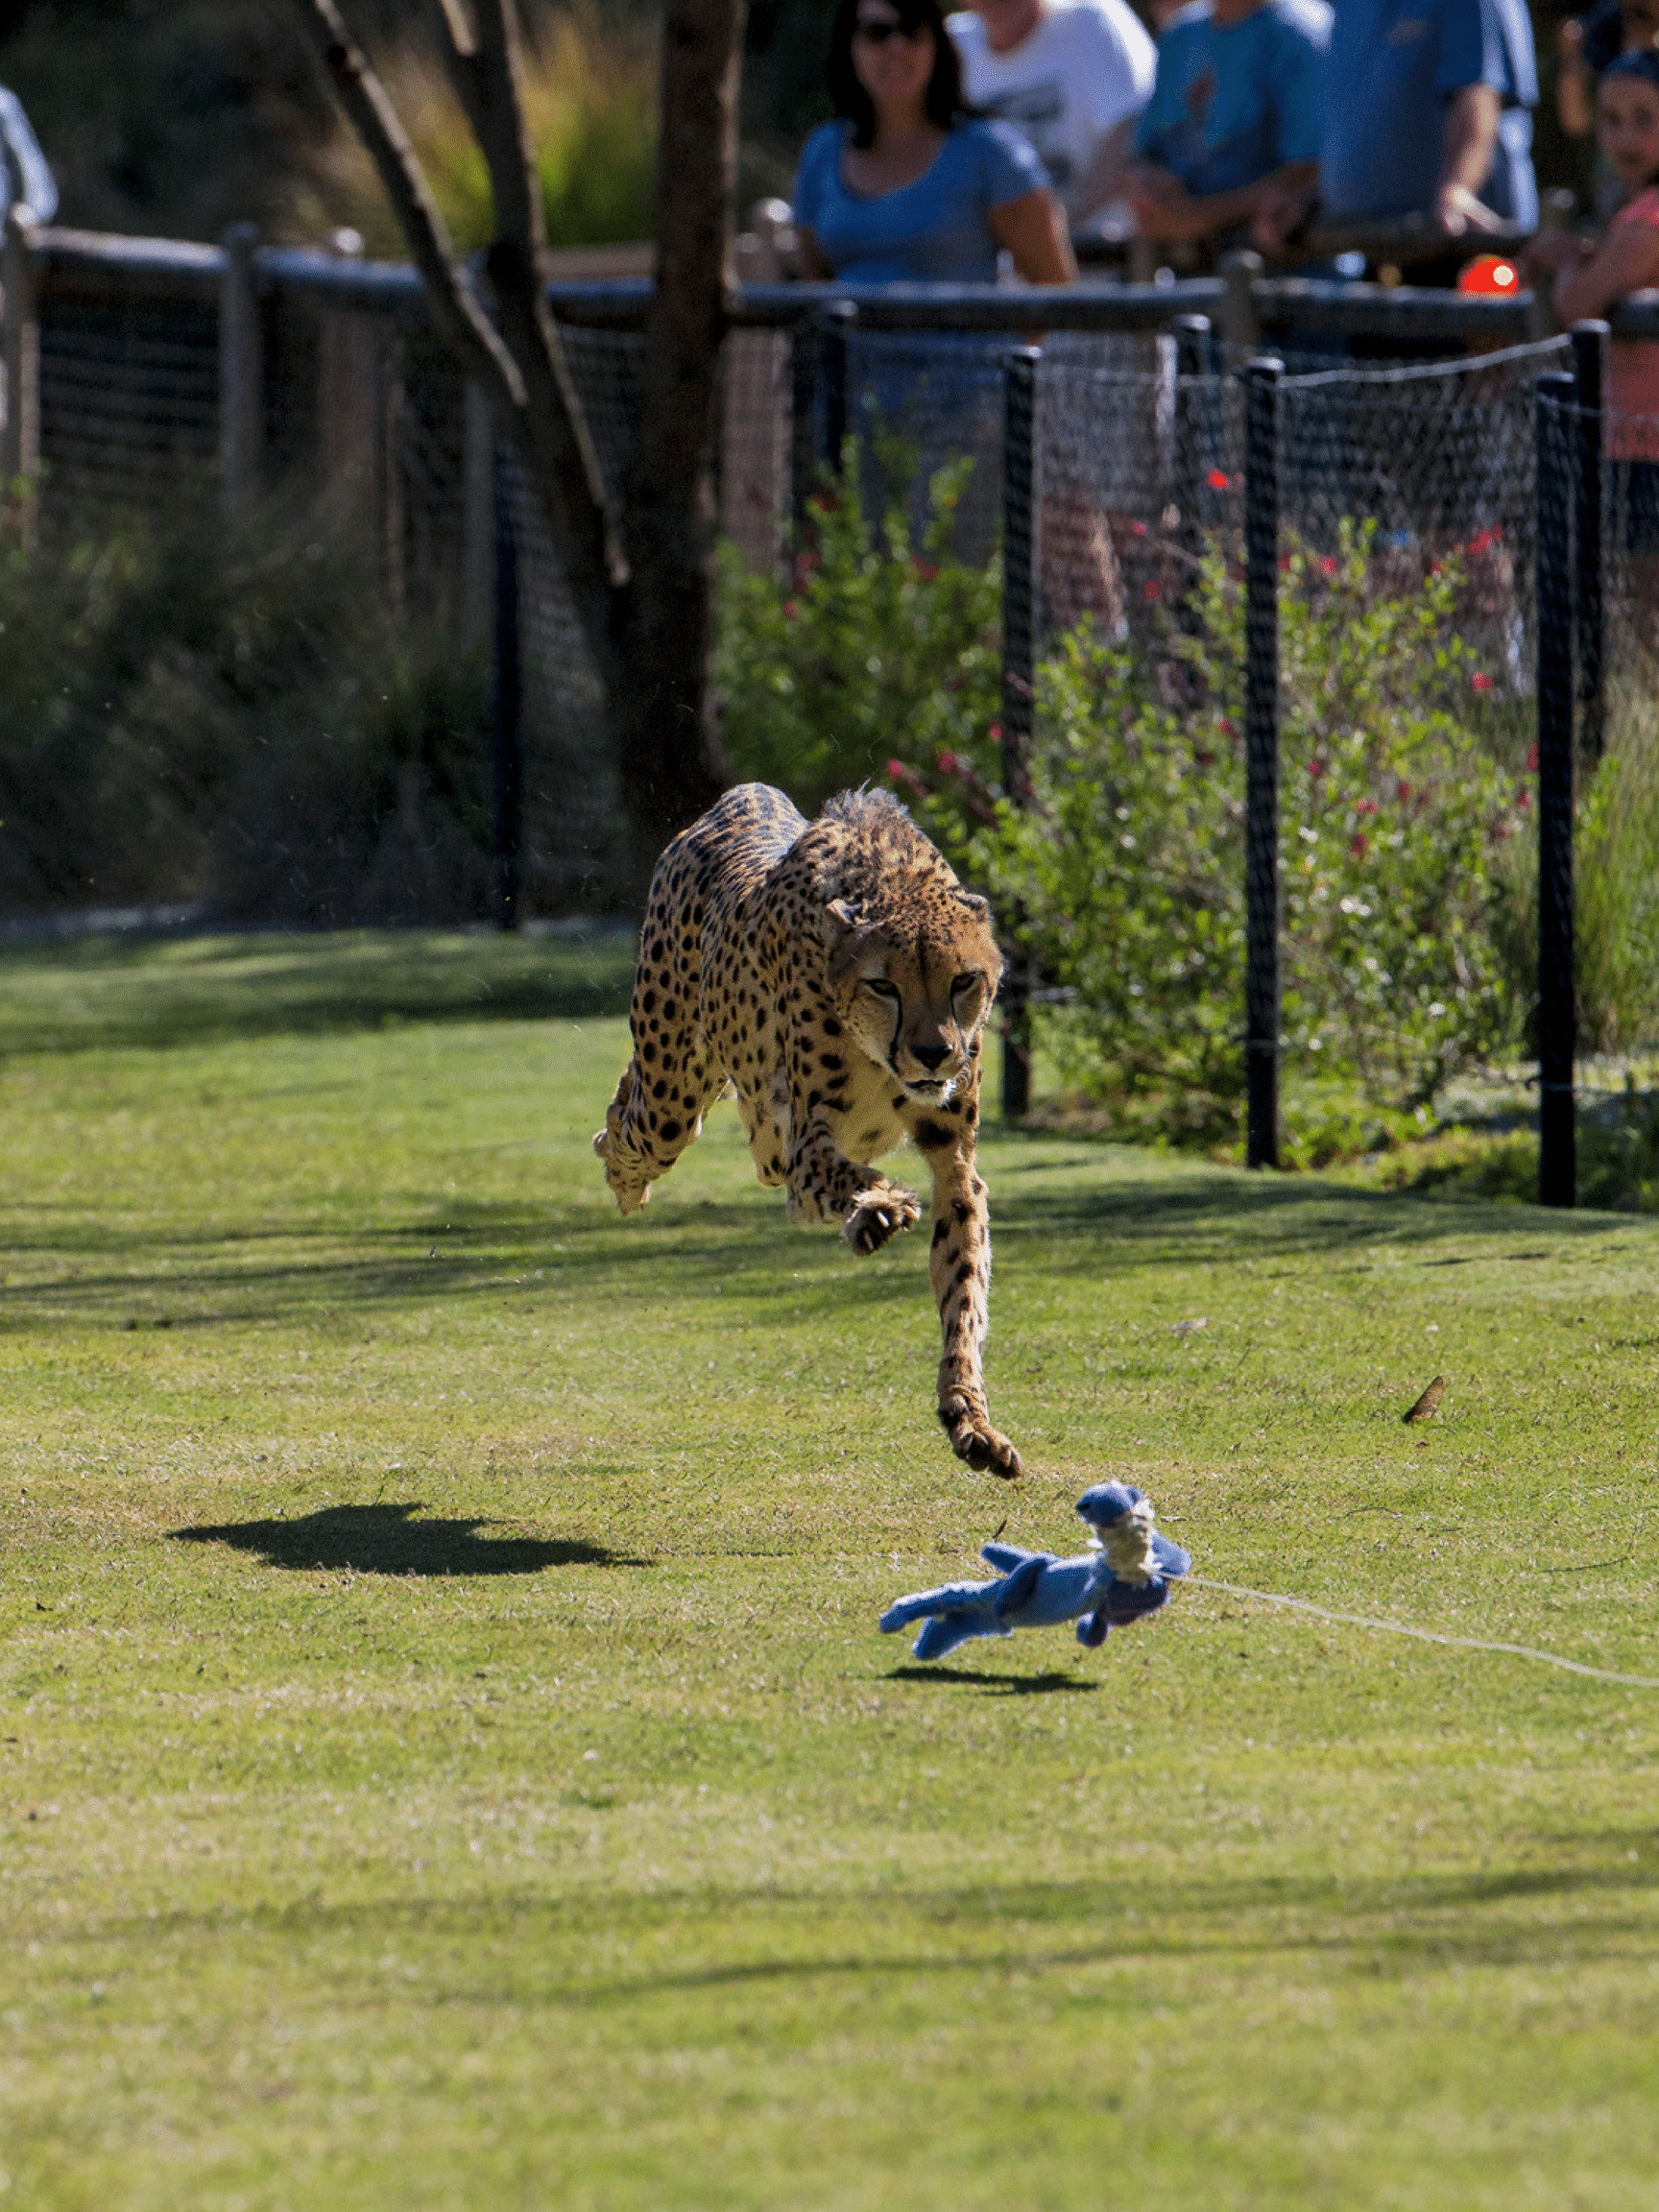 Cheetah Run at San Diego Zoo Safari Park is not-to-be-missed!